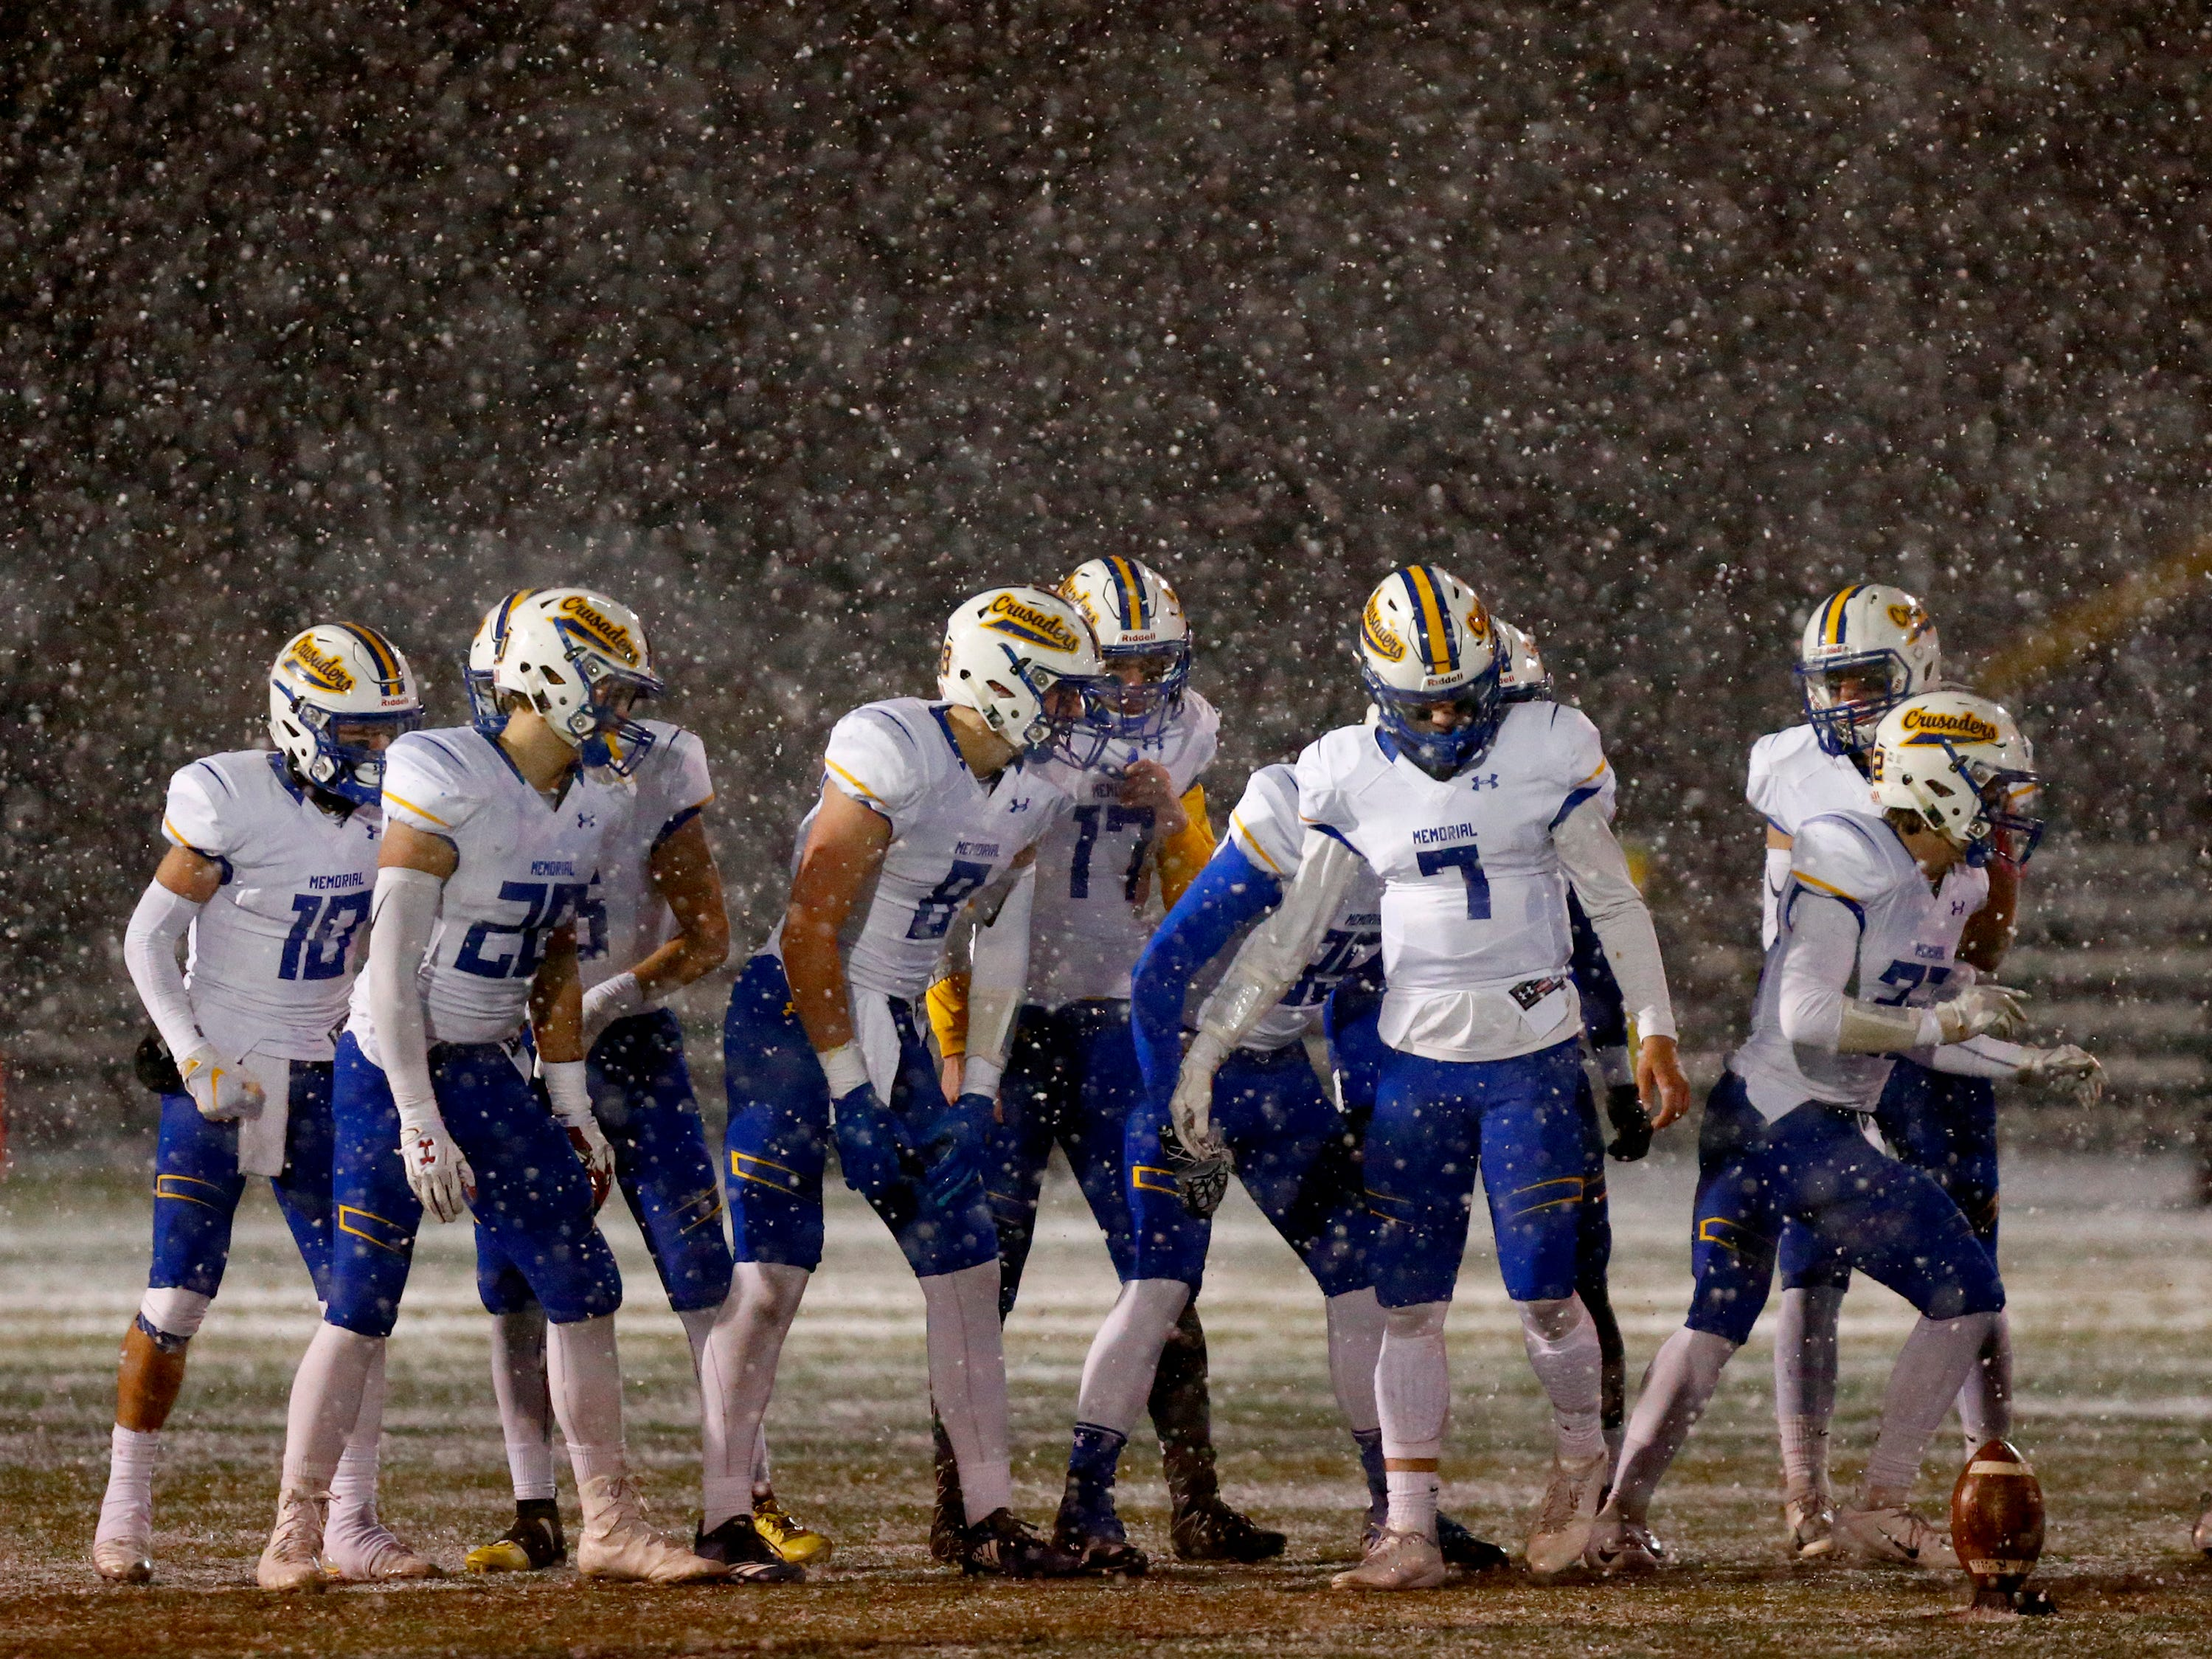 Catholic Memorial sets up for a kickoff in a swirl of snow during WIAA Division 3 Level 4 play against New Berlin Eisenhower Nov. 9 at Kettle Moraine. The Crusaders defeated the Lions, 41-14, to punch their ticket to the state title game.